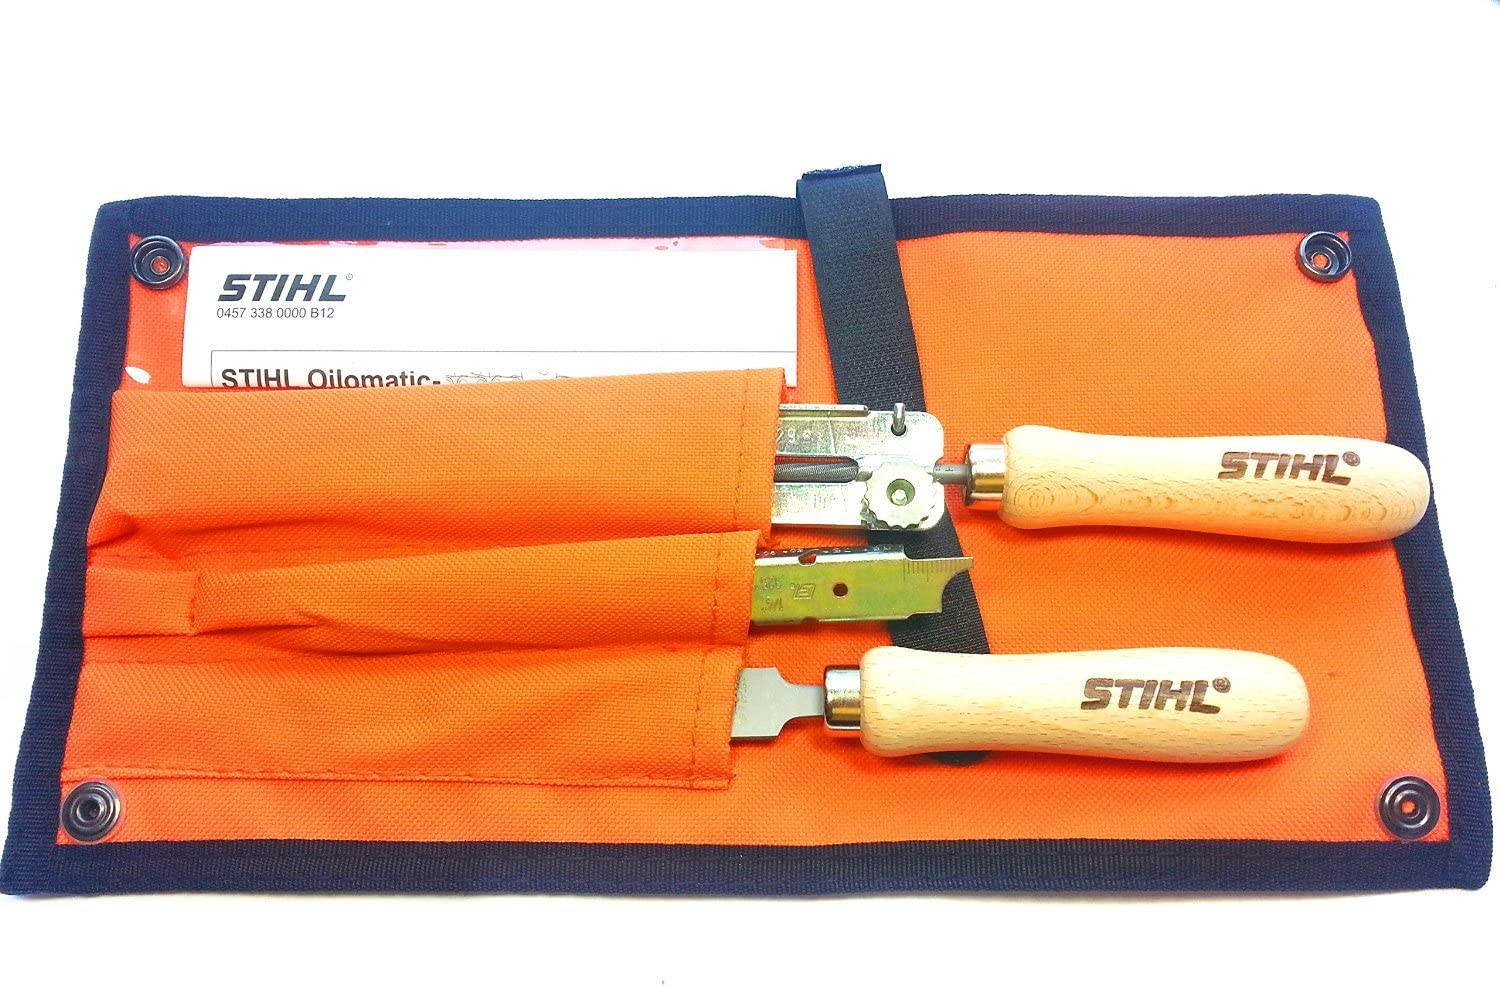 Stihl 56050071027 Complete Saw Chain Filing Kit